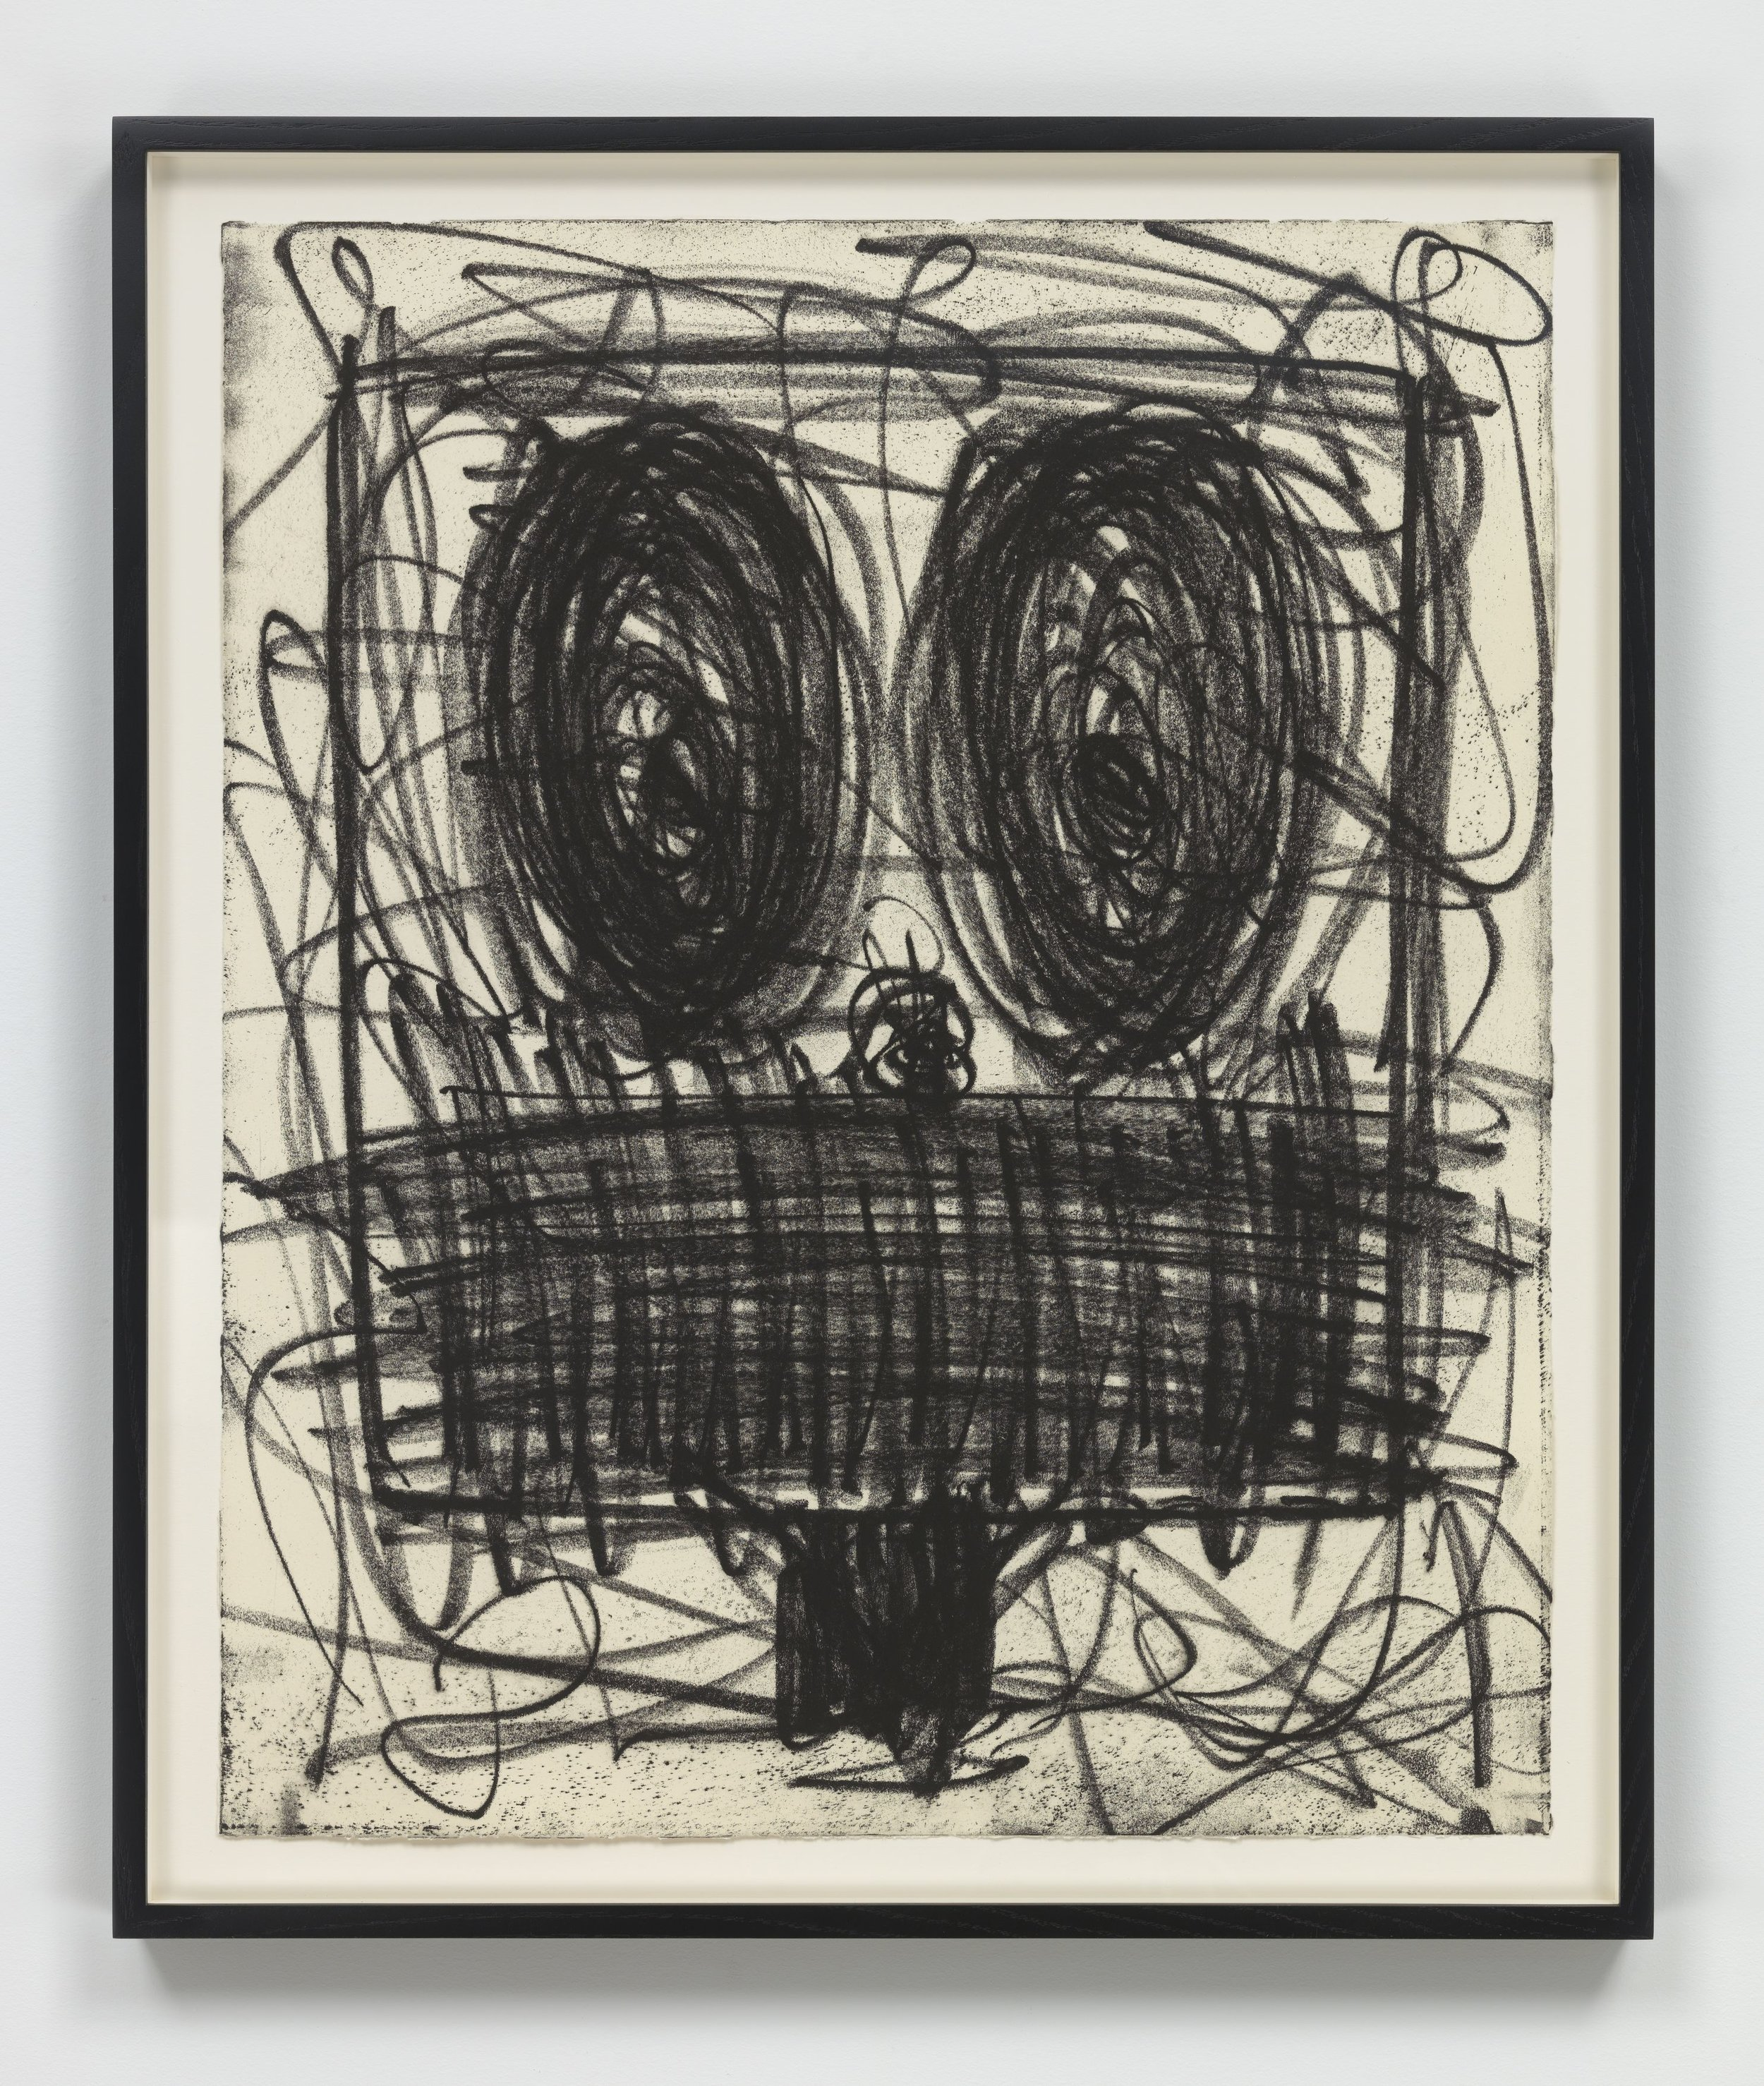 Rashid Johnson   Untitled (Anxious Man) , 2018 Softground etching Sheet: 23 3/4 x 19 3/4 inches Printed by Jennifer Melby; published by Hauser & Wirth Editions, New York Edition: 35 Courtesy of the artist and Hauser & Wirth